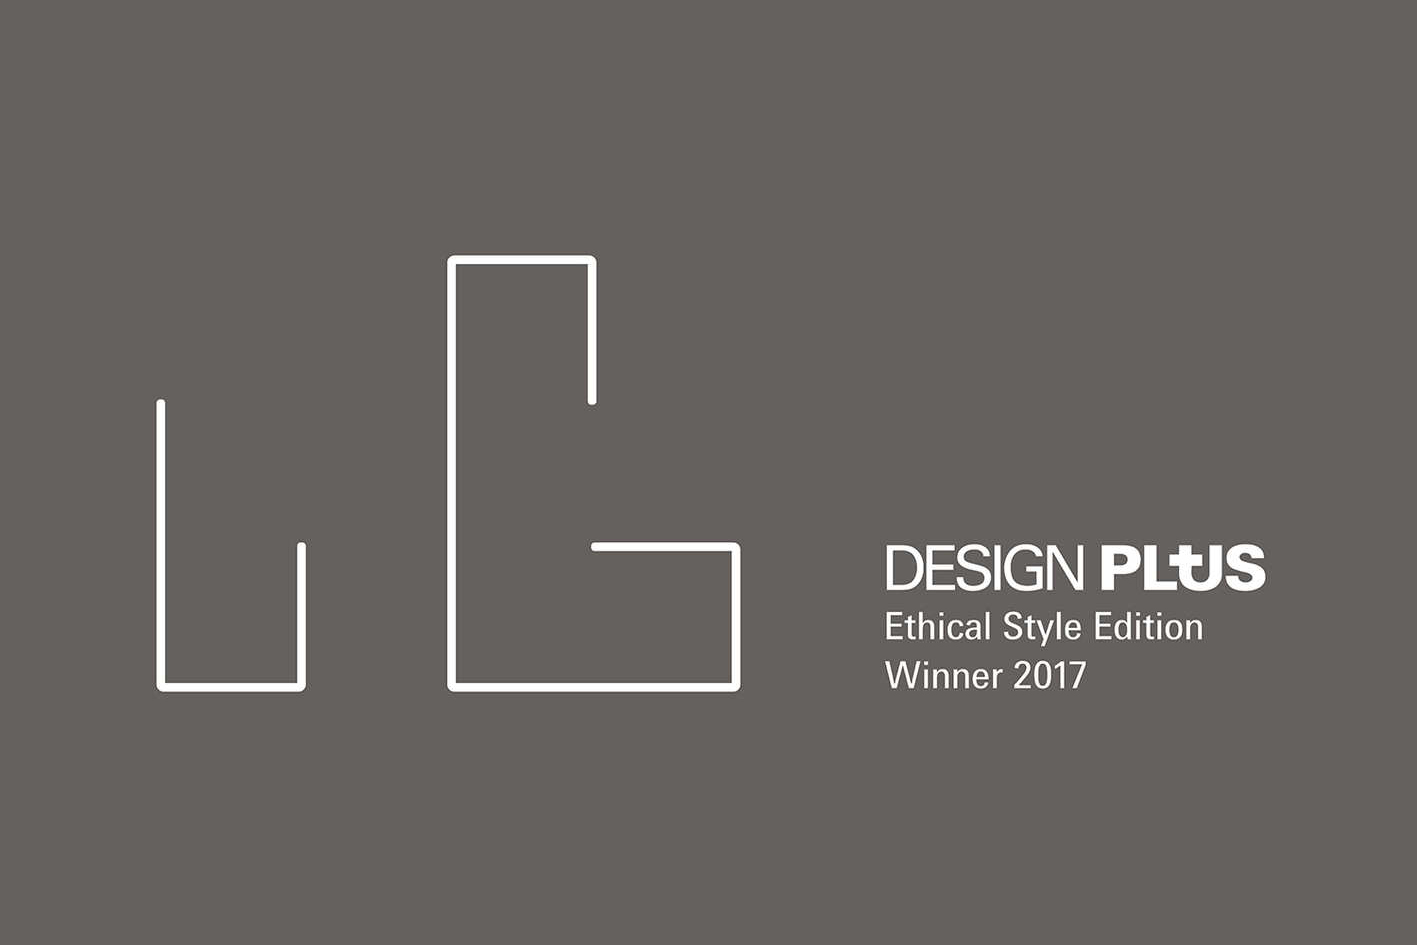 Design Plus Award 2017